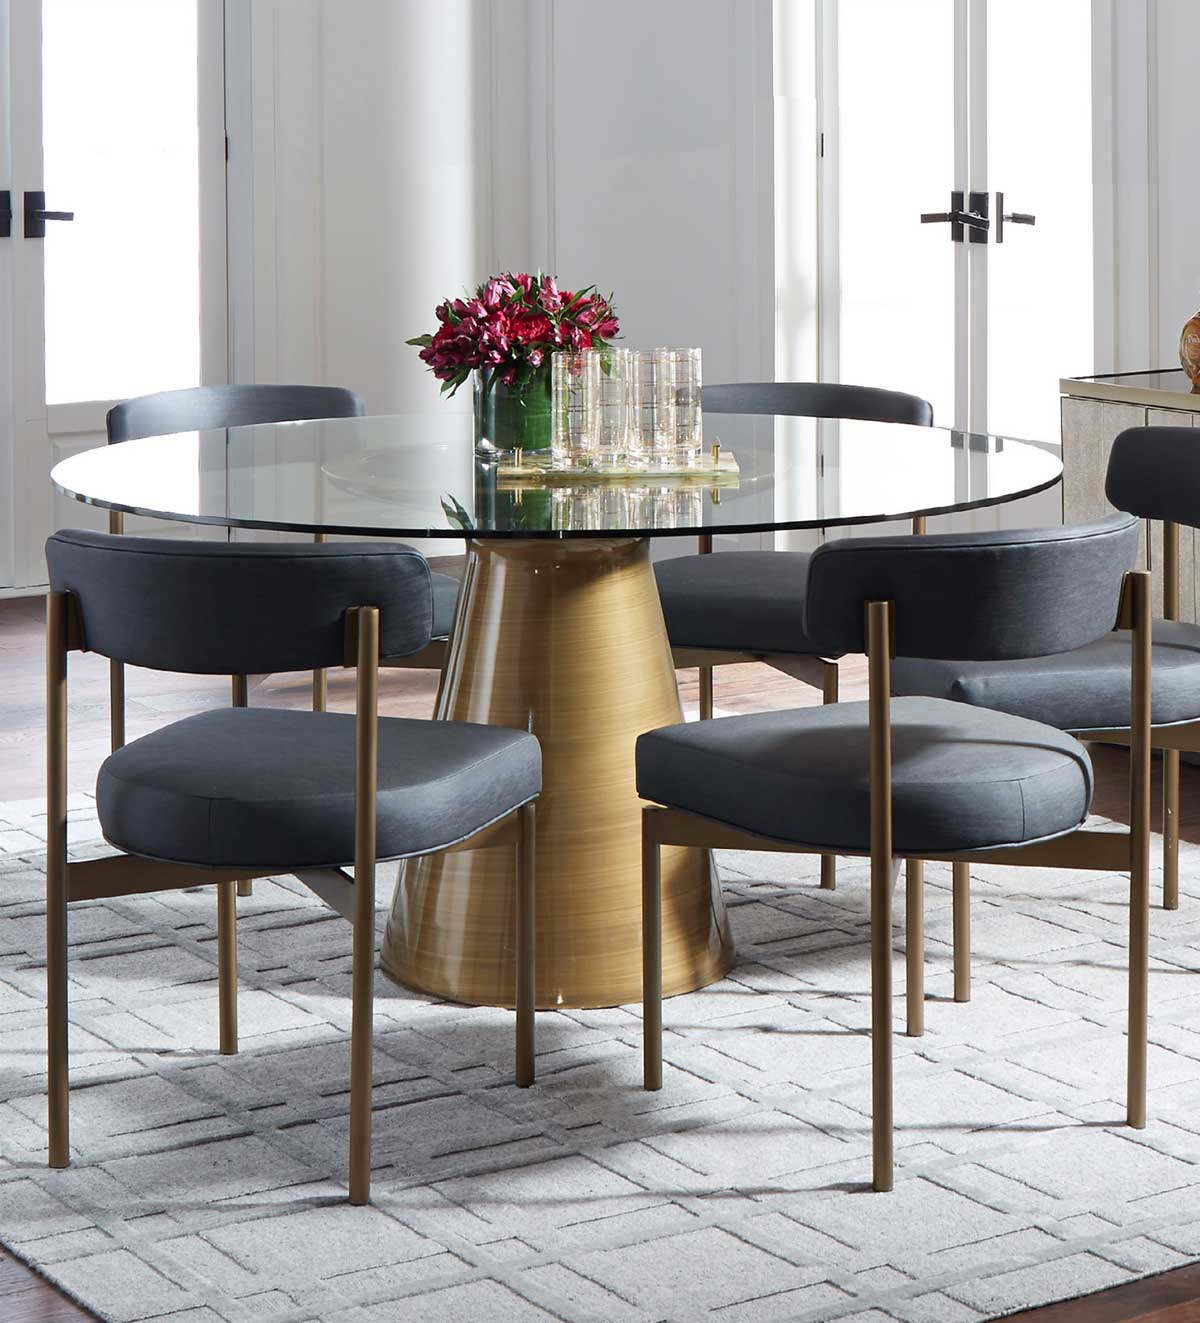 Dine in Style - thoughtfully designed to suit any space and taste.